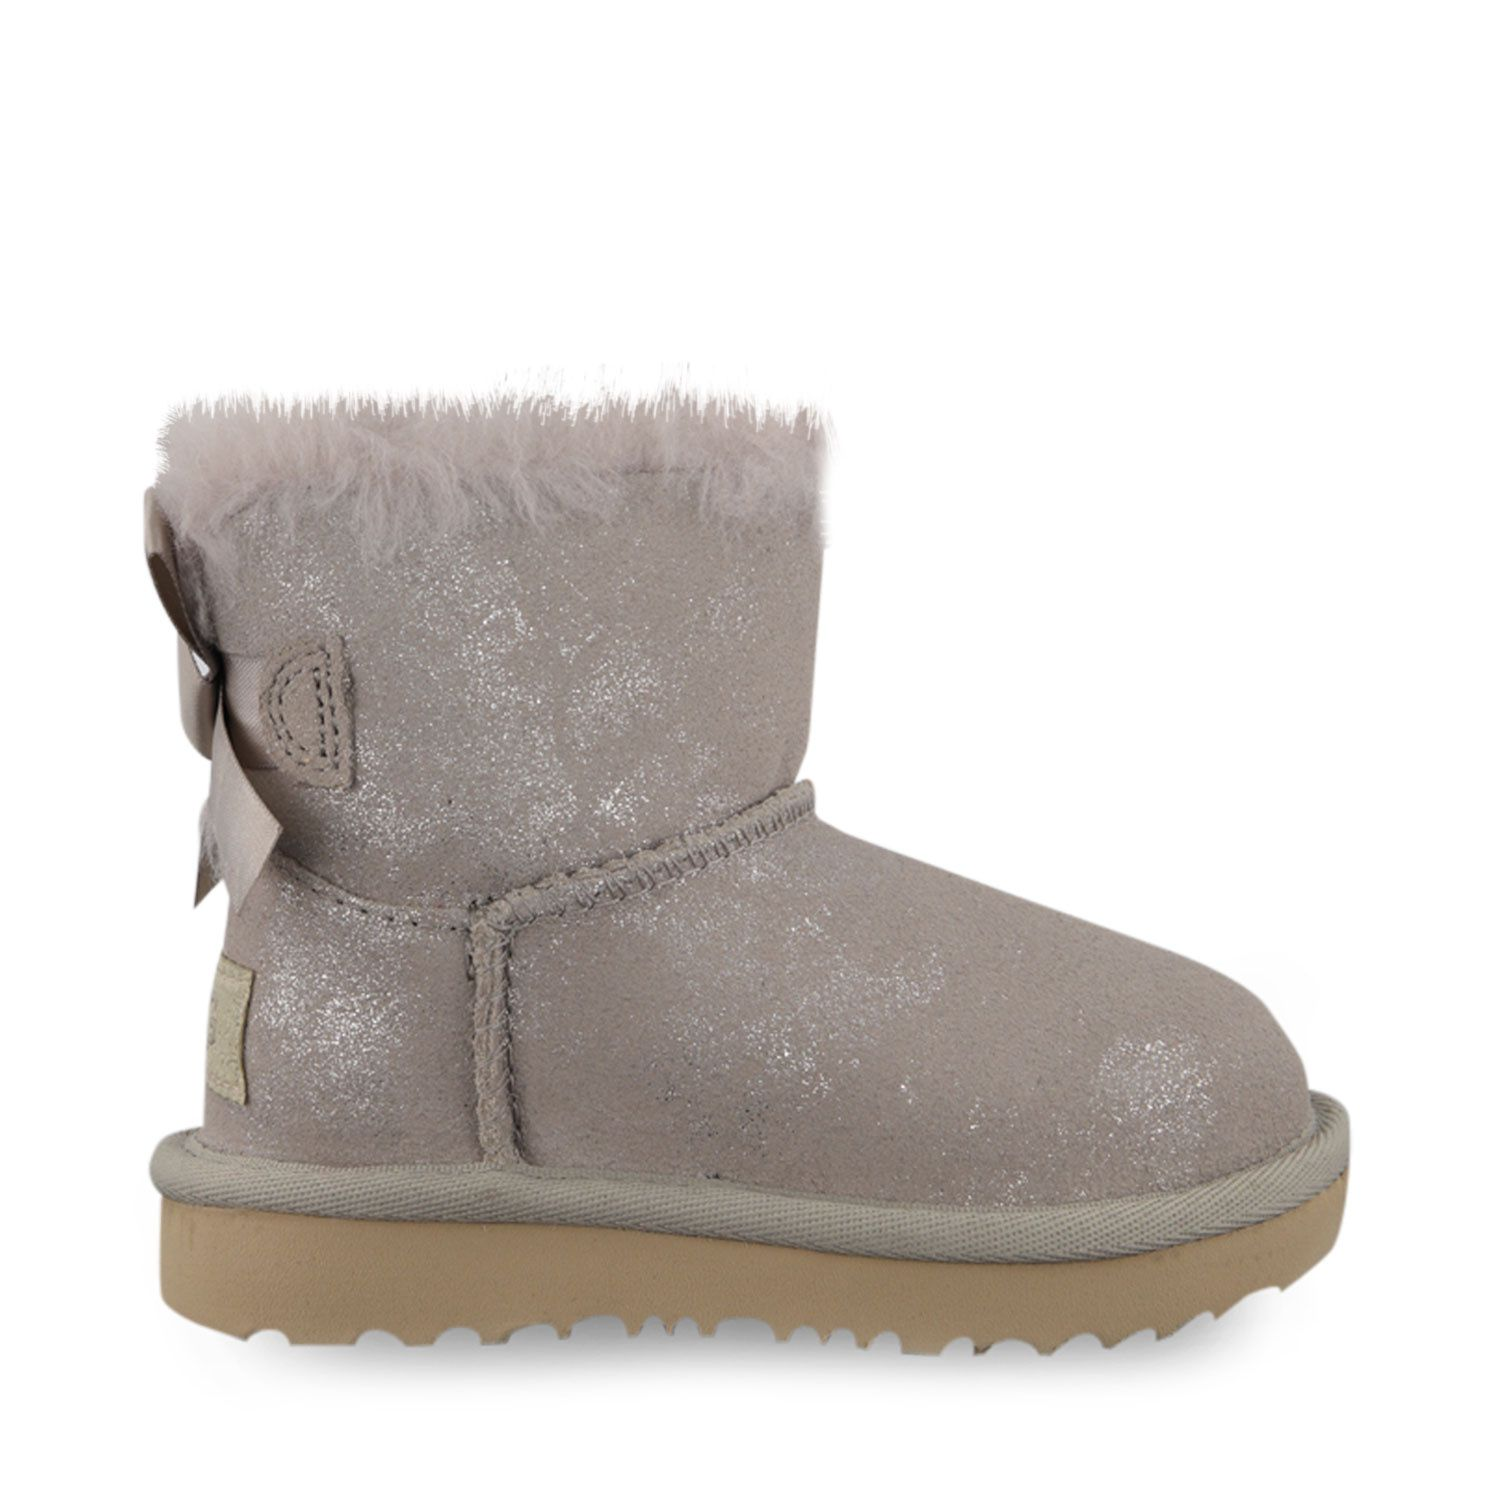 Picture of Ugg 1116173 kids boots grey